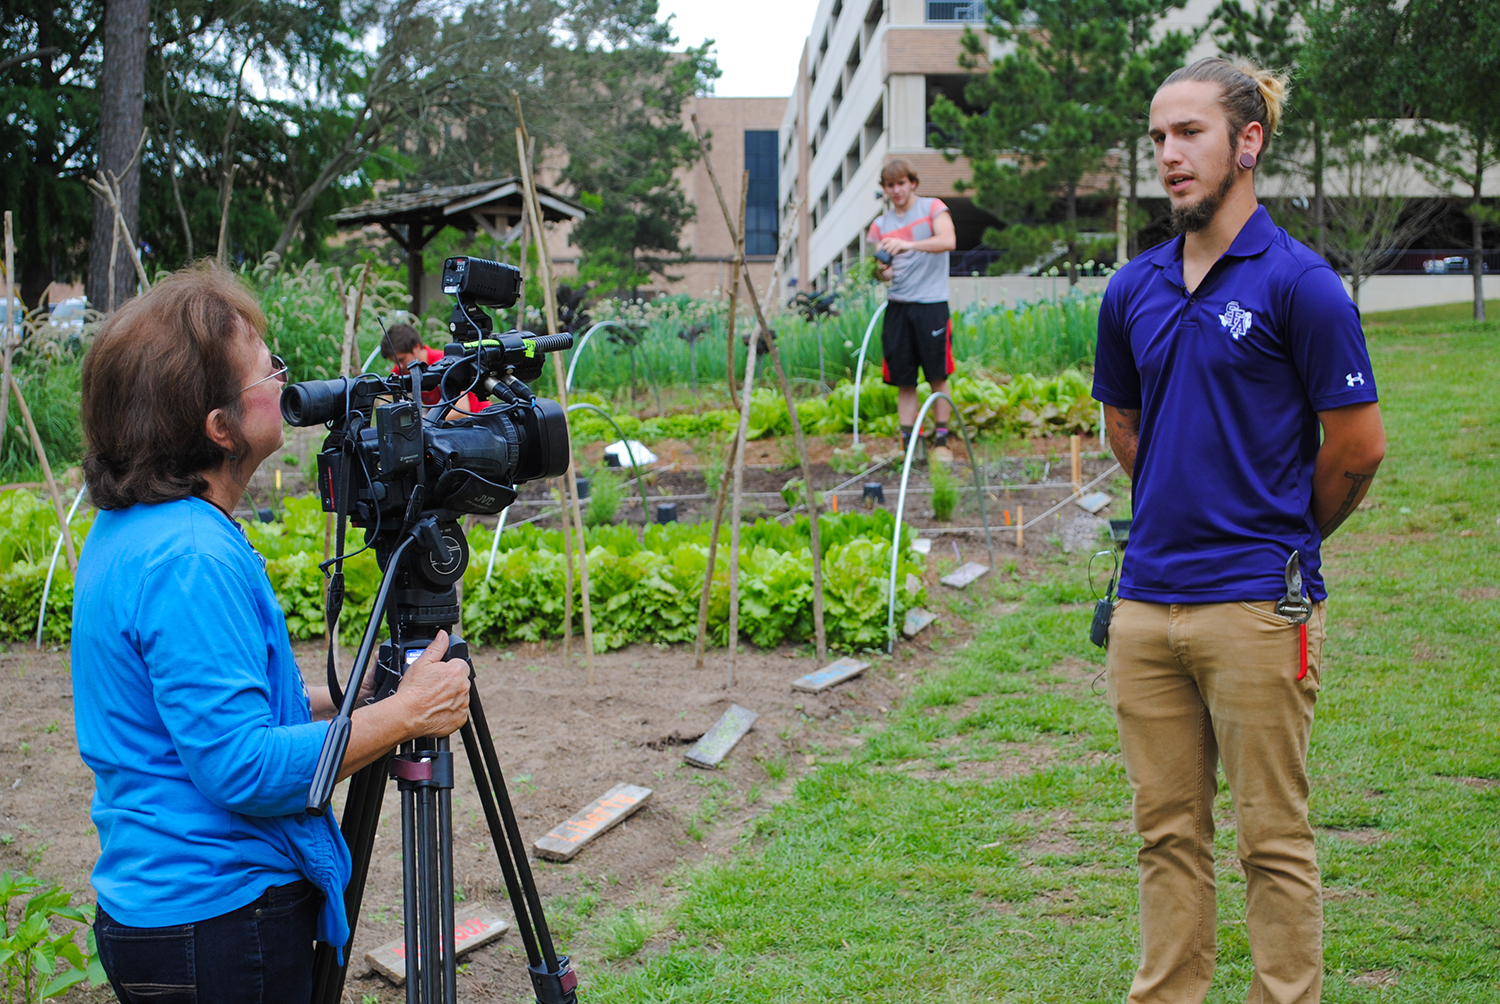 SFA Horticulture Student Hunter Walker is interviewed by Donna McCollum of KTRE.